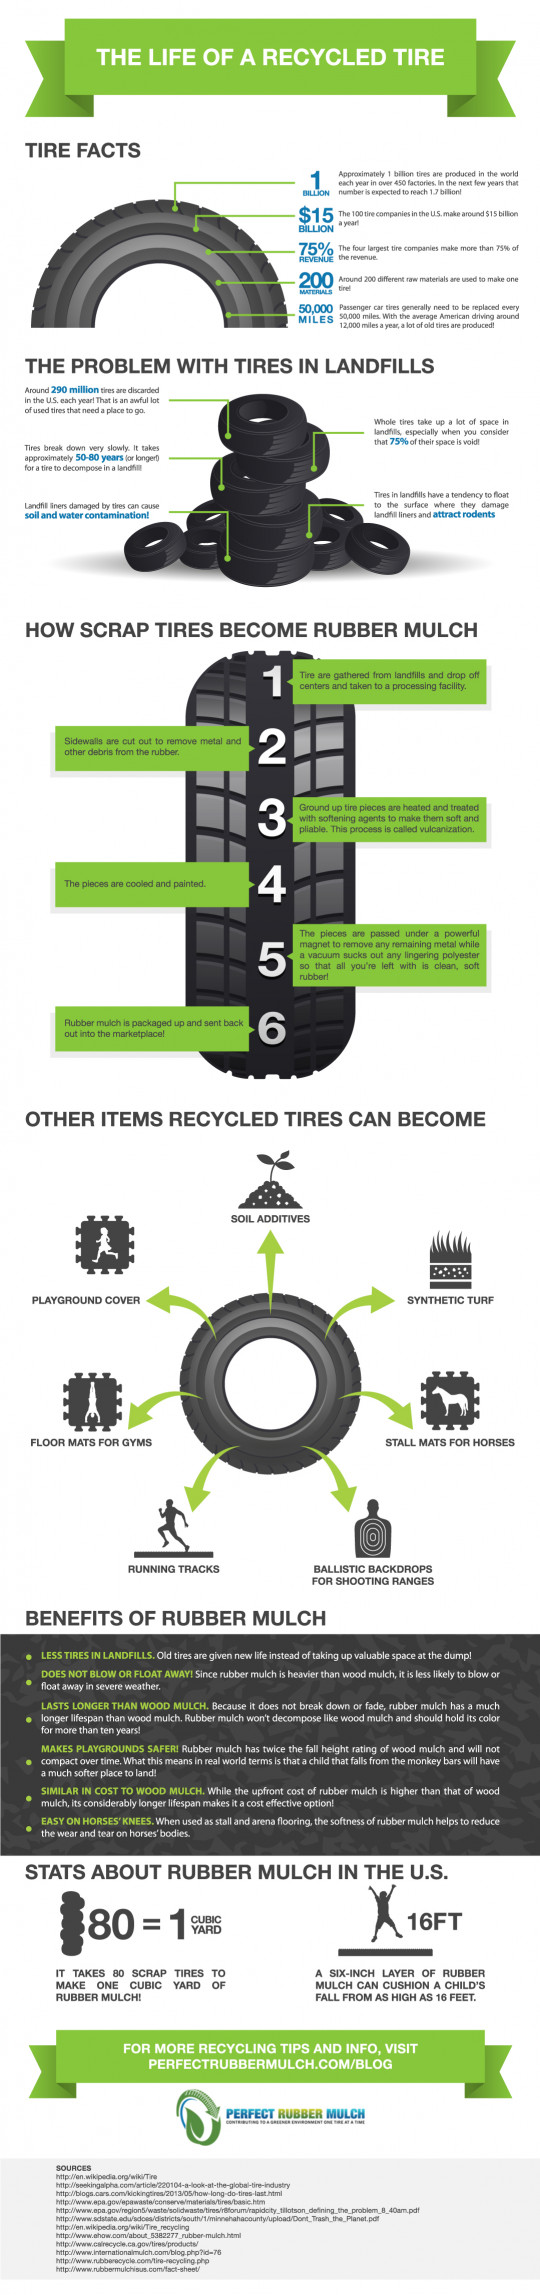 The Life of a Recycled Tire